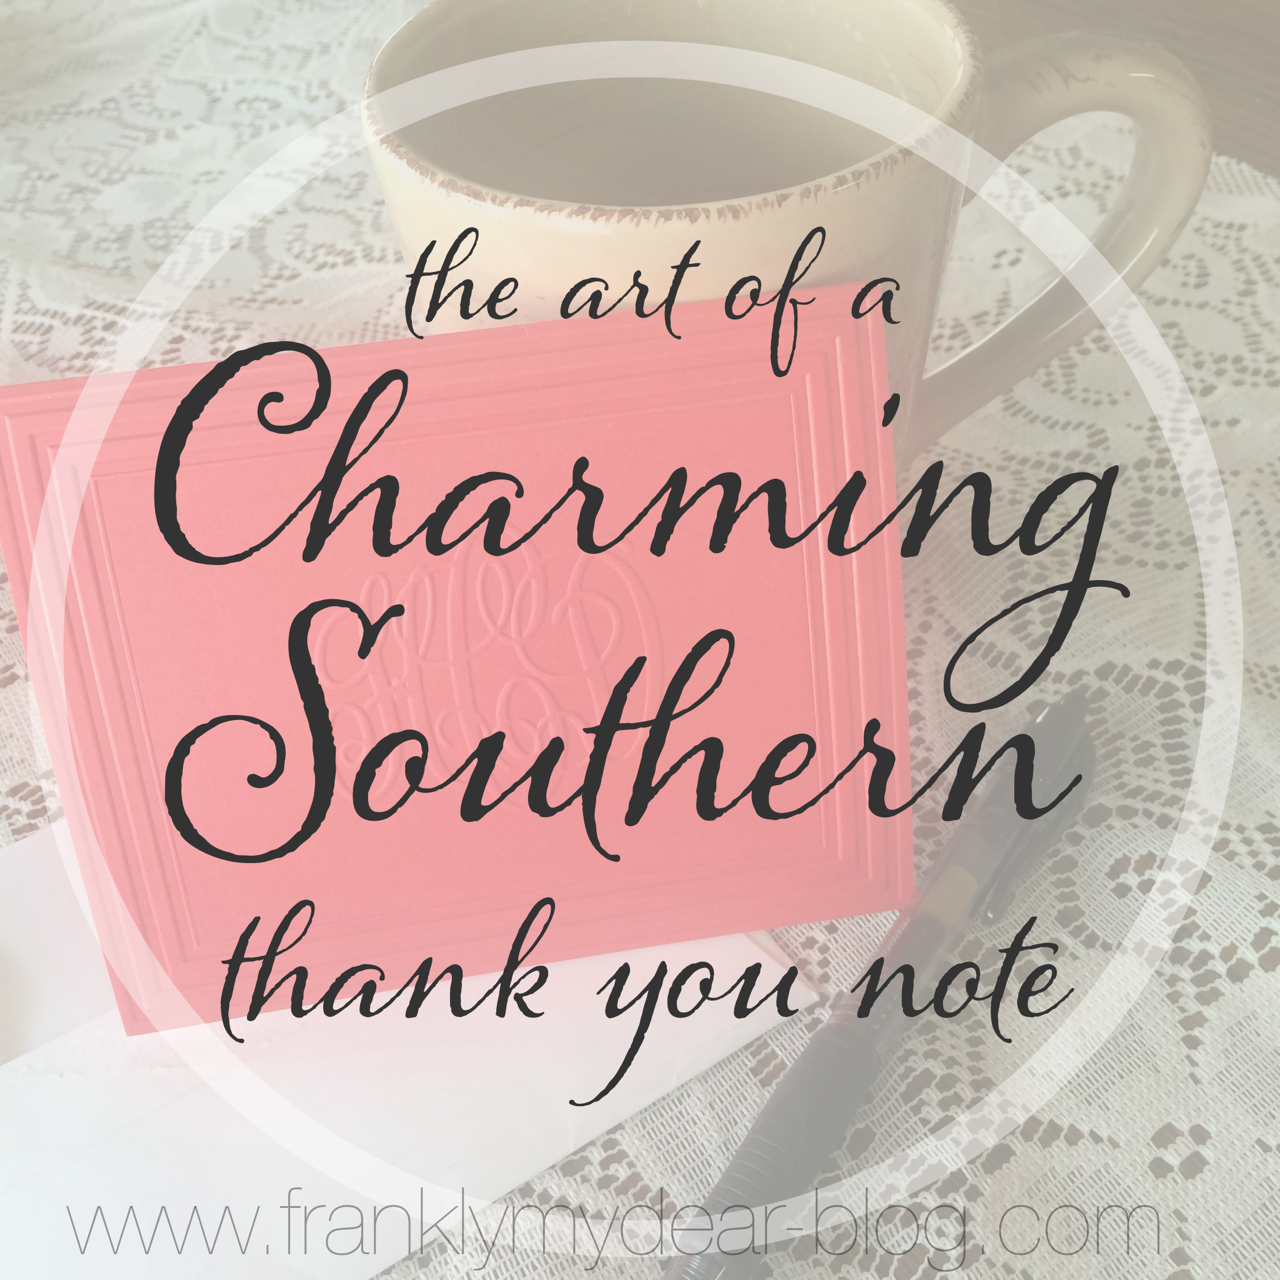 The Art of a Charming Southern Thank You {Repost}